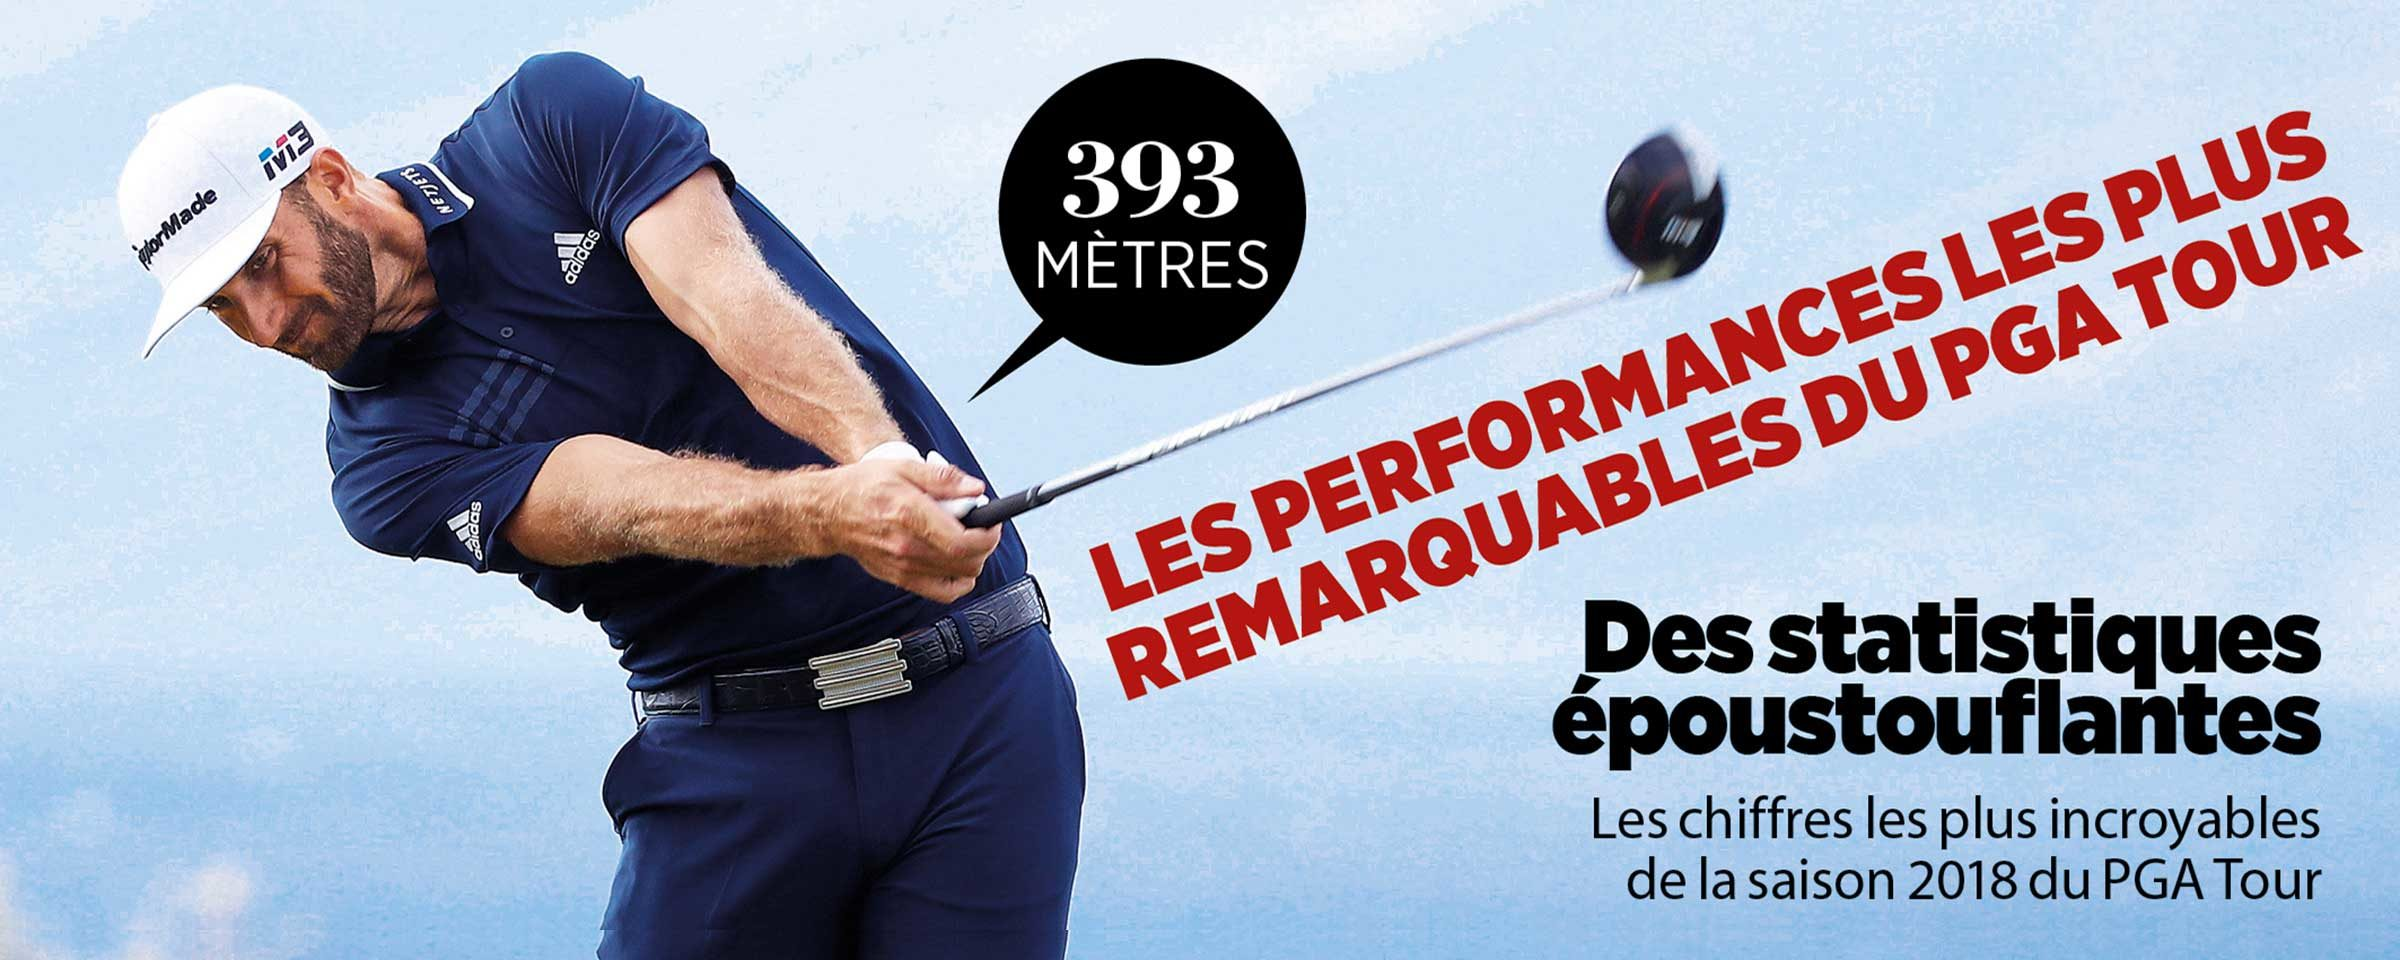 Dustin Johnson a envoyé une balle à 393 mètres au Sentry Tournament of Champions